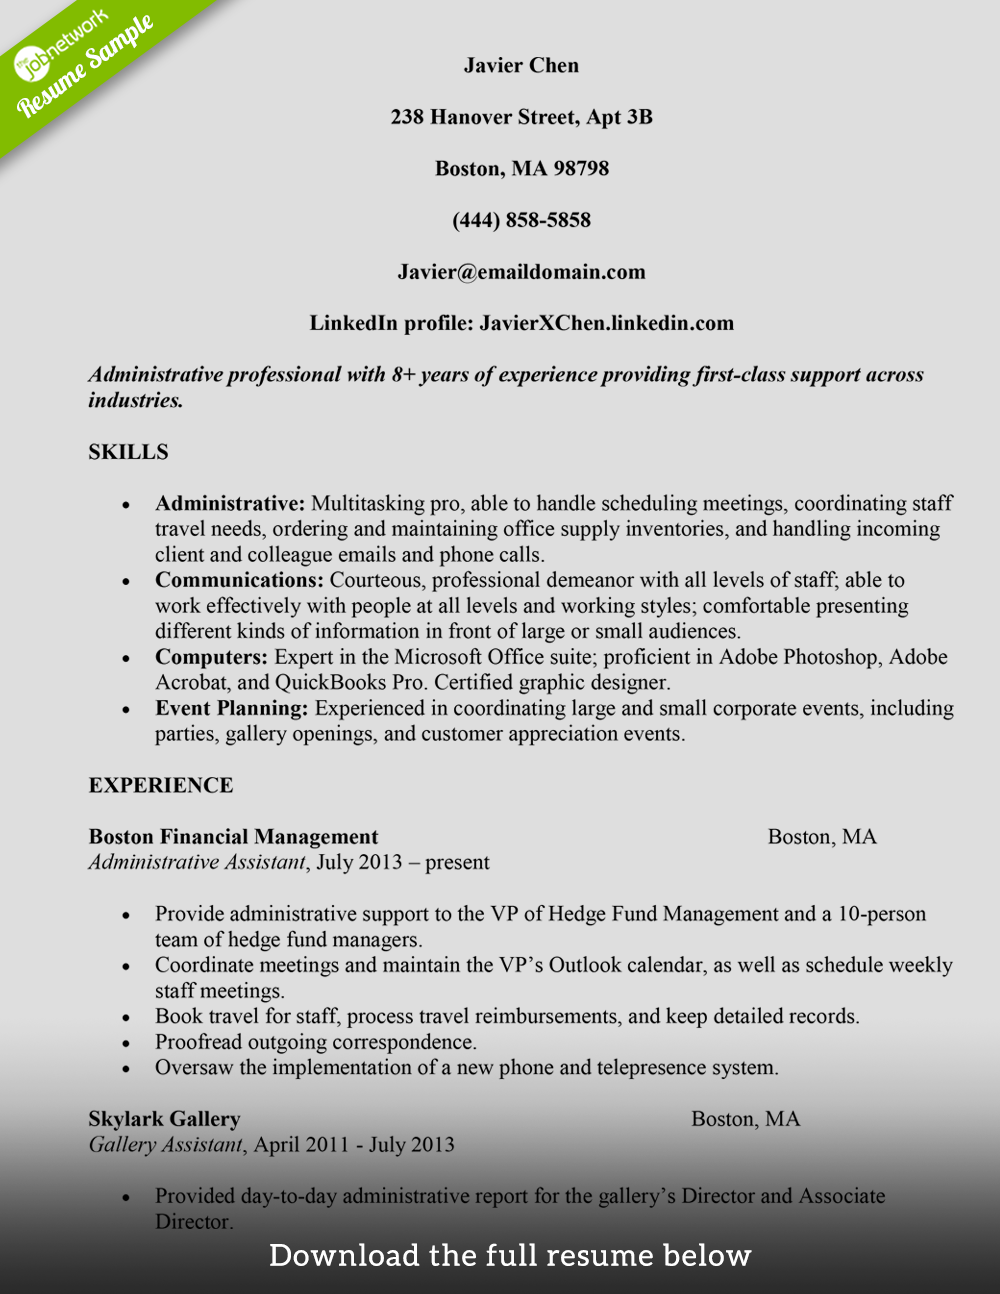 how to write a perfect administrative assistant resume examples administrative assistant resume javier chen